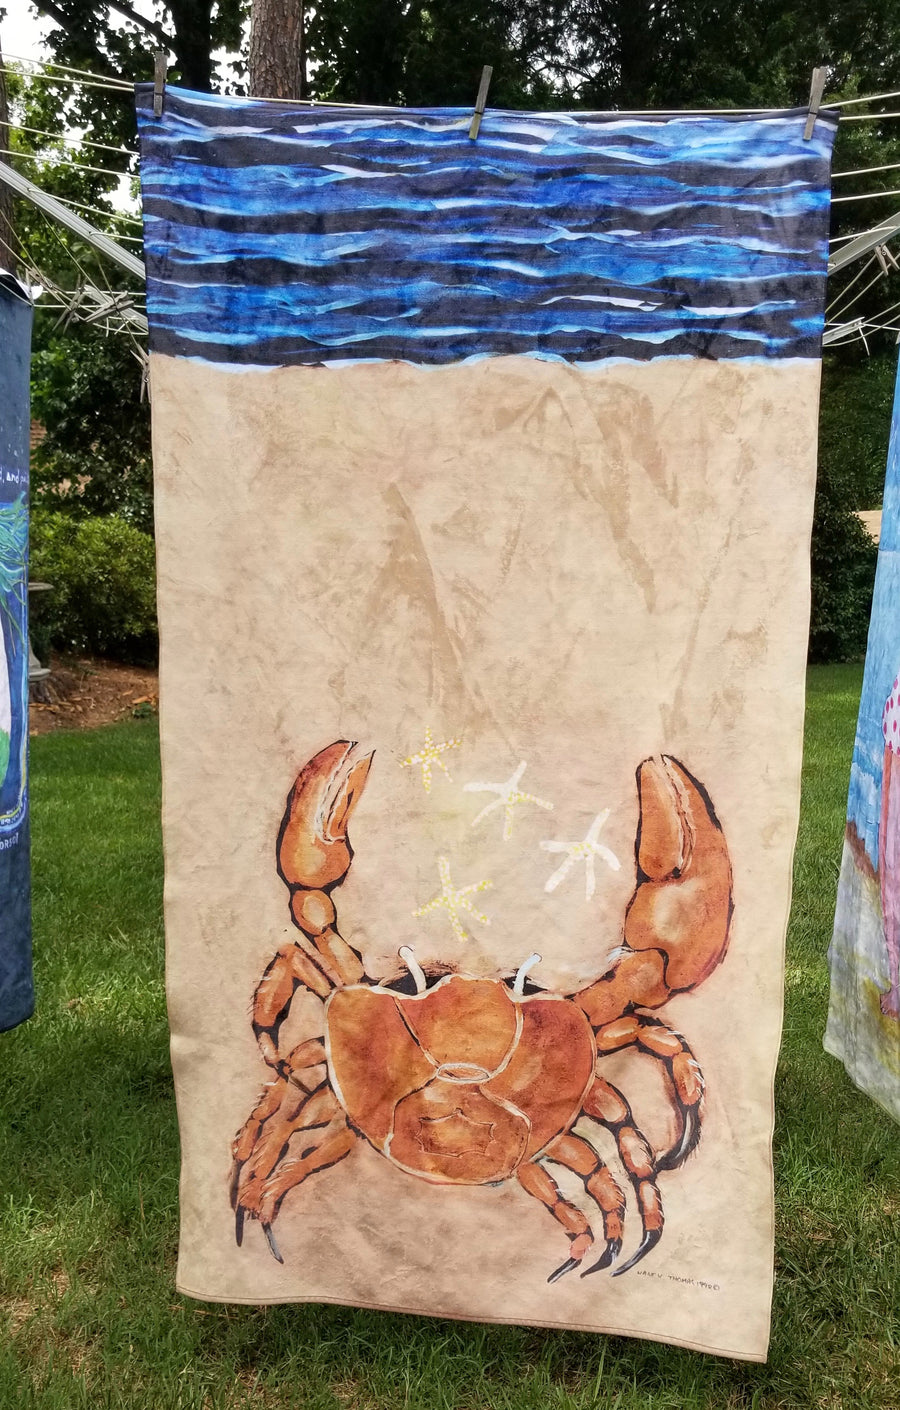 King Size Plush Beach Towels - CENTER of ATTRACTION